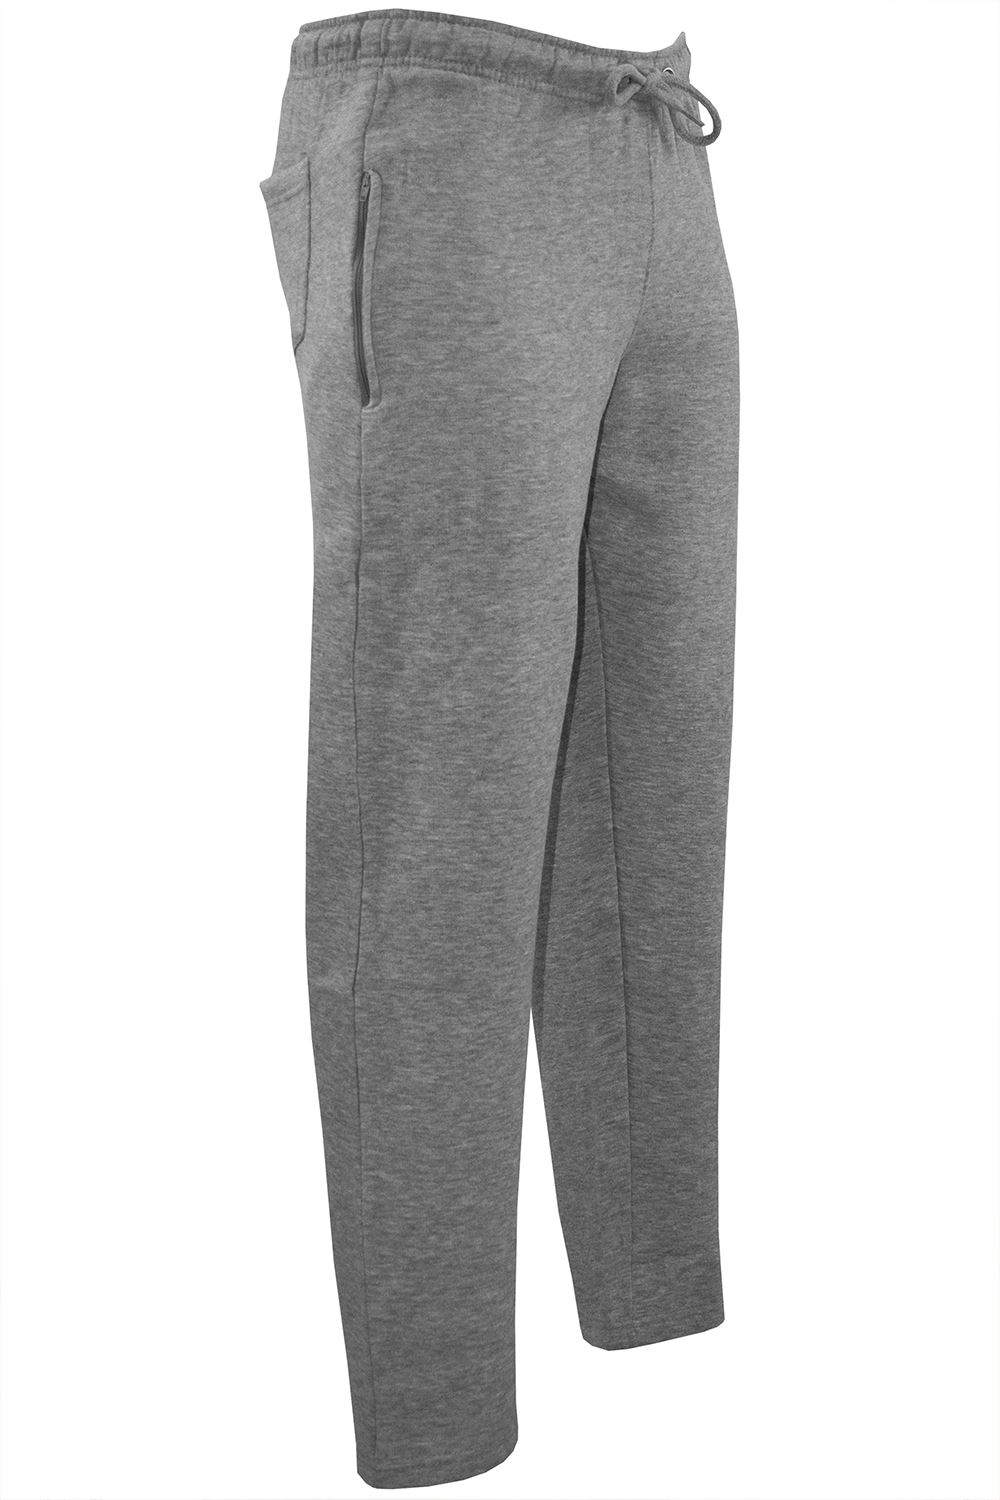 New Mens Elasticated Cotton Cuffed Tracksuit Bottoms Gym